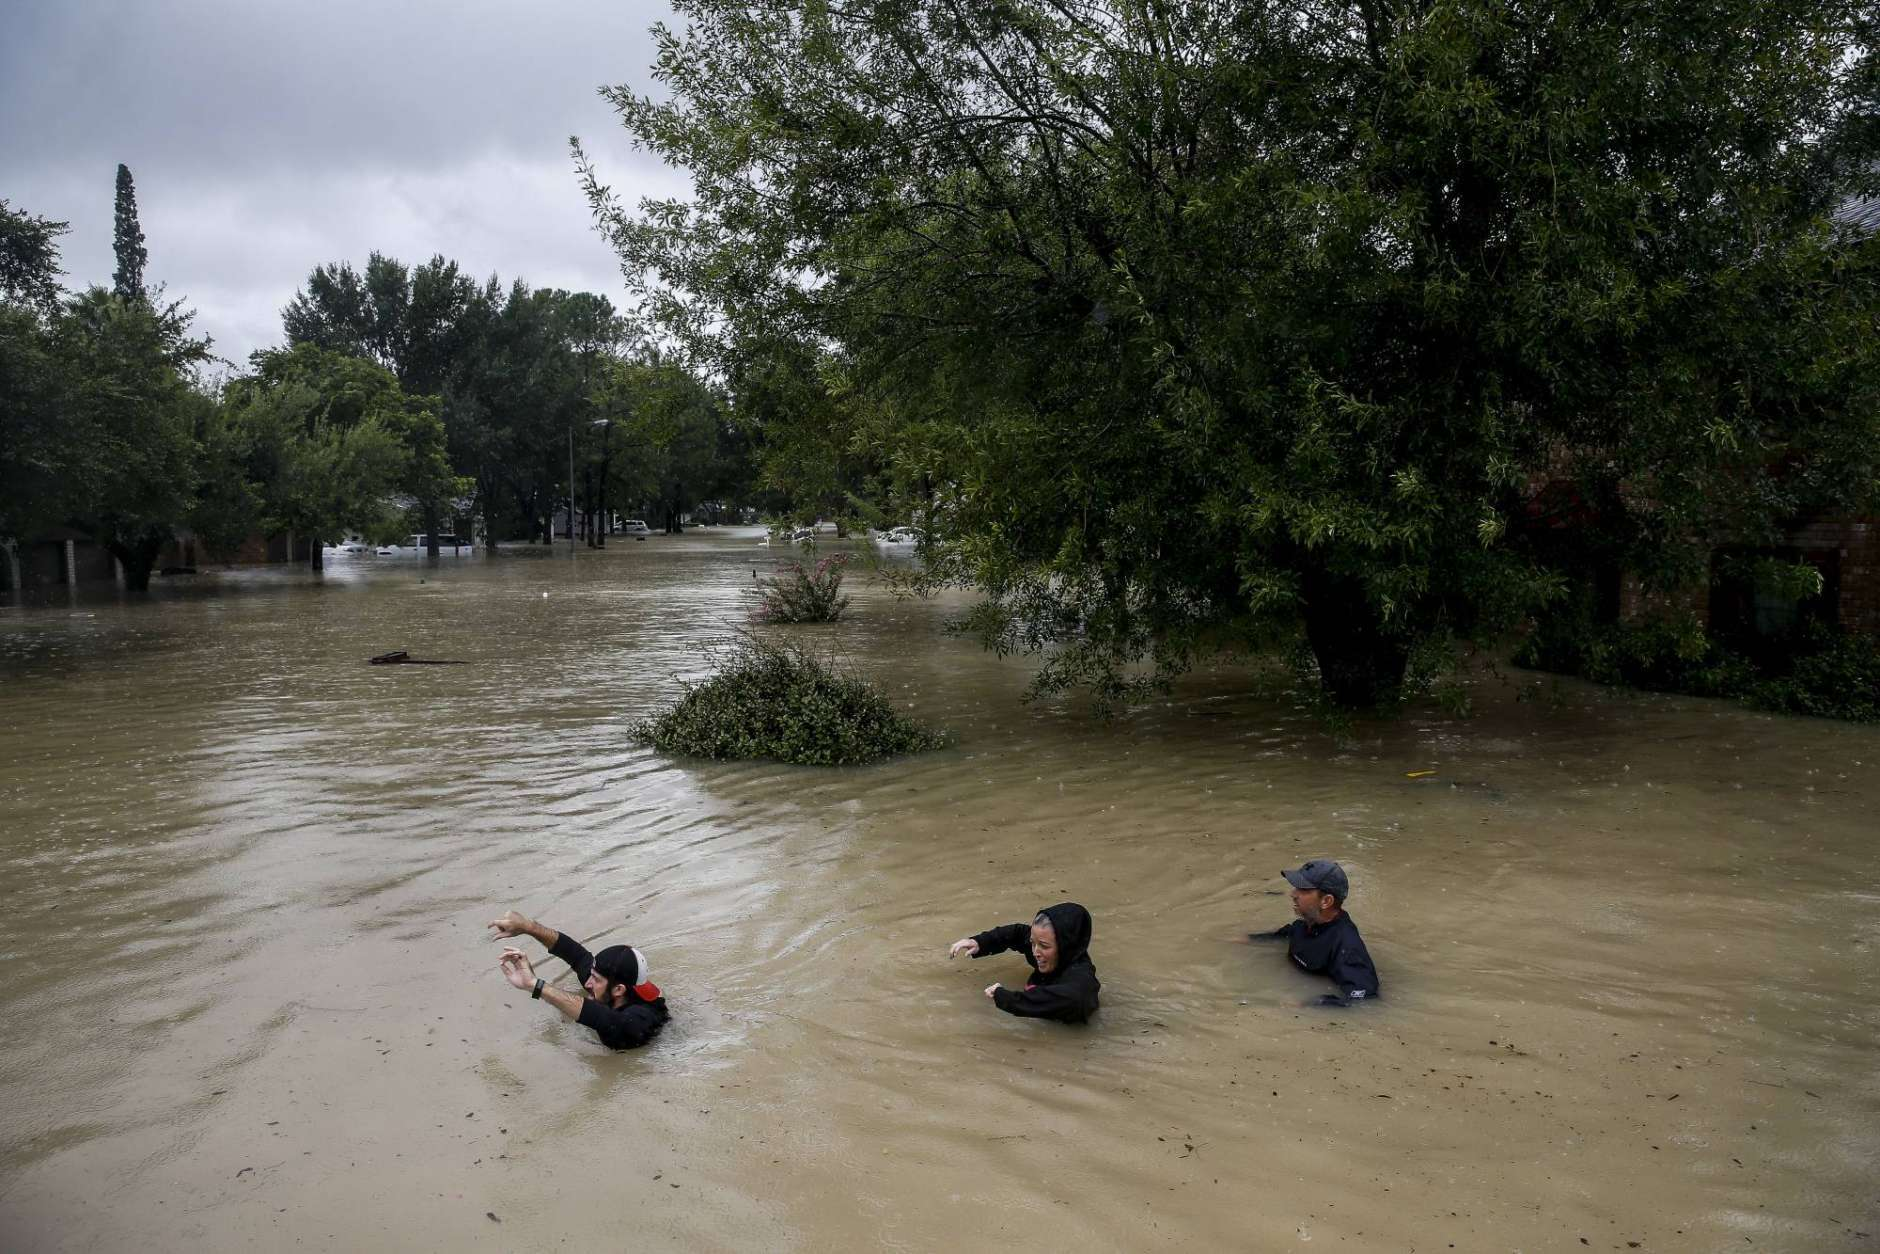 People wade through chest deep water down Pine Cliff Drive as Addicks Reservoir nears capacity due to near constant rain from Tropical Storm Harvey, Tuesday, Aug. 29, 2017 in Houston. (Michael Ciaglo/Houston Chronicle via AP)